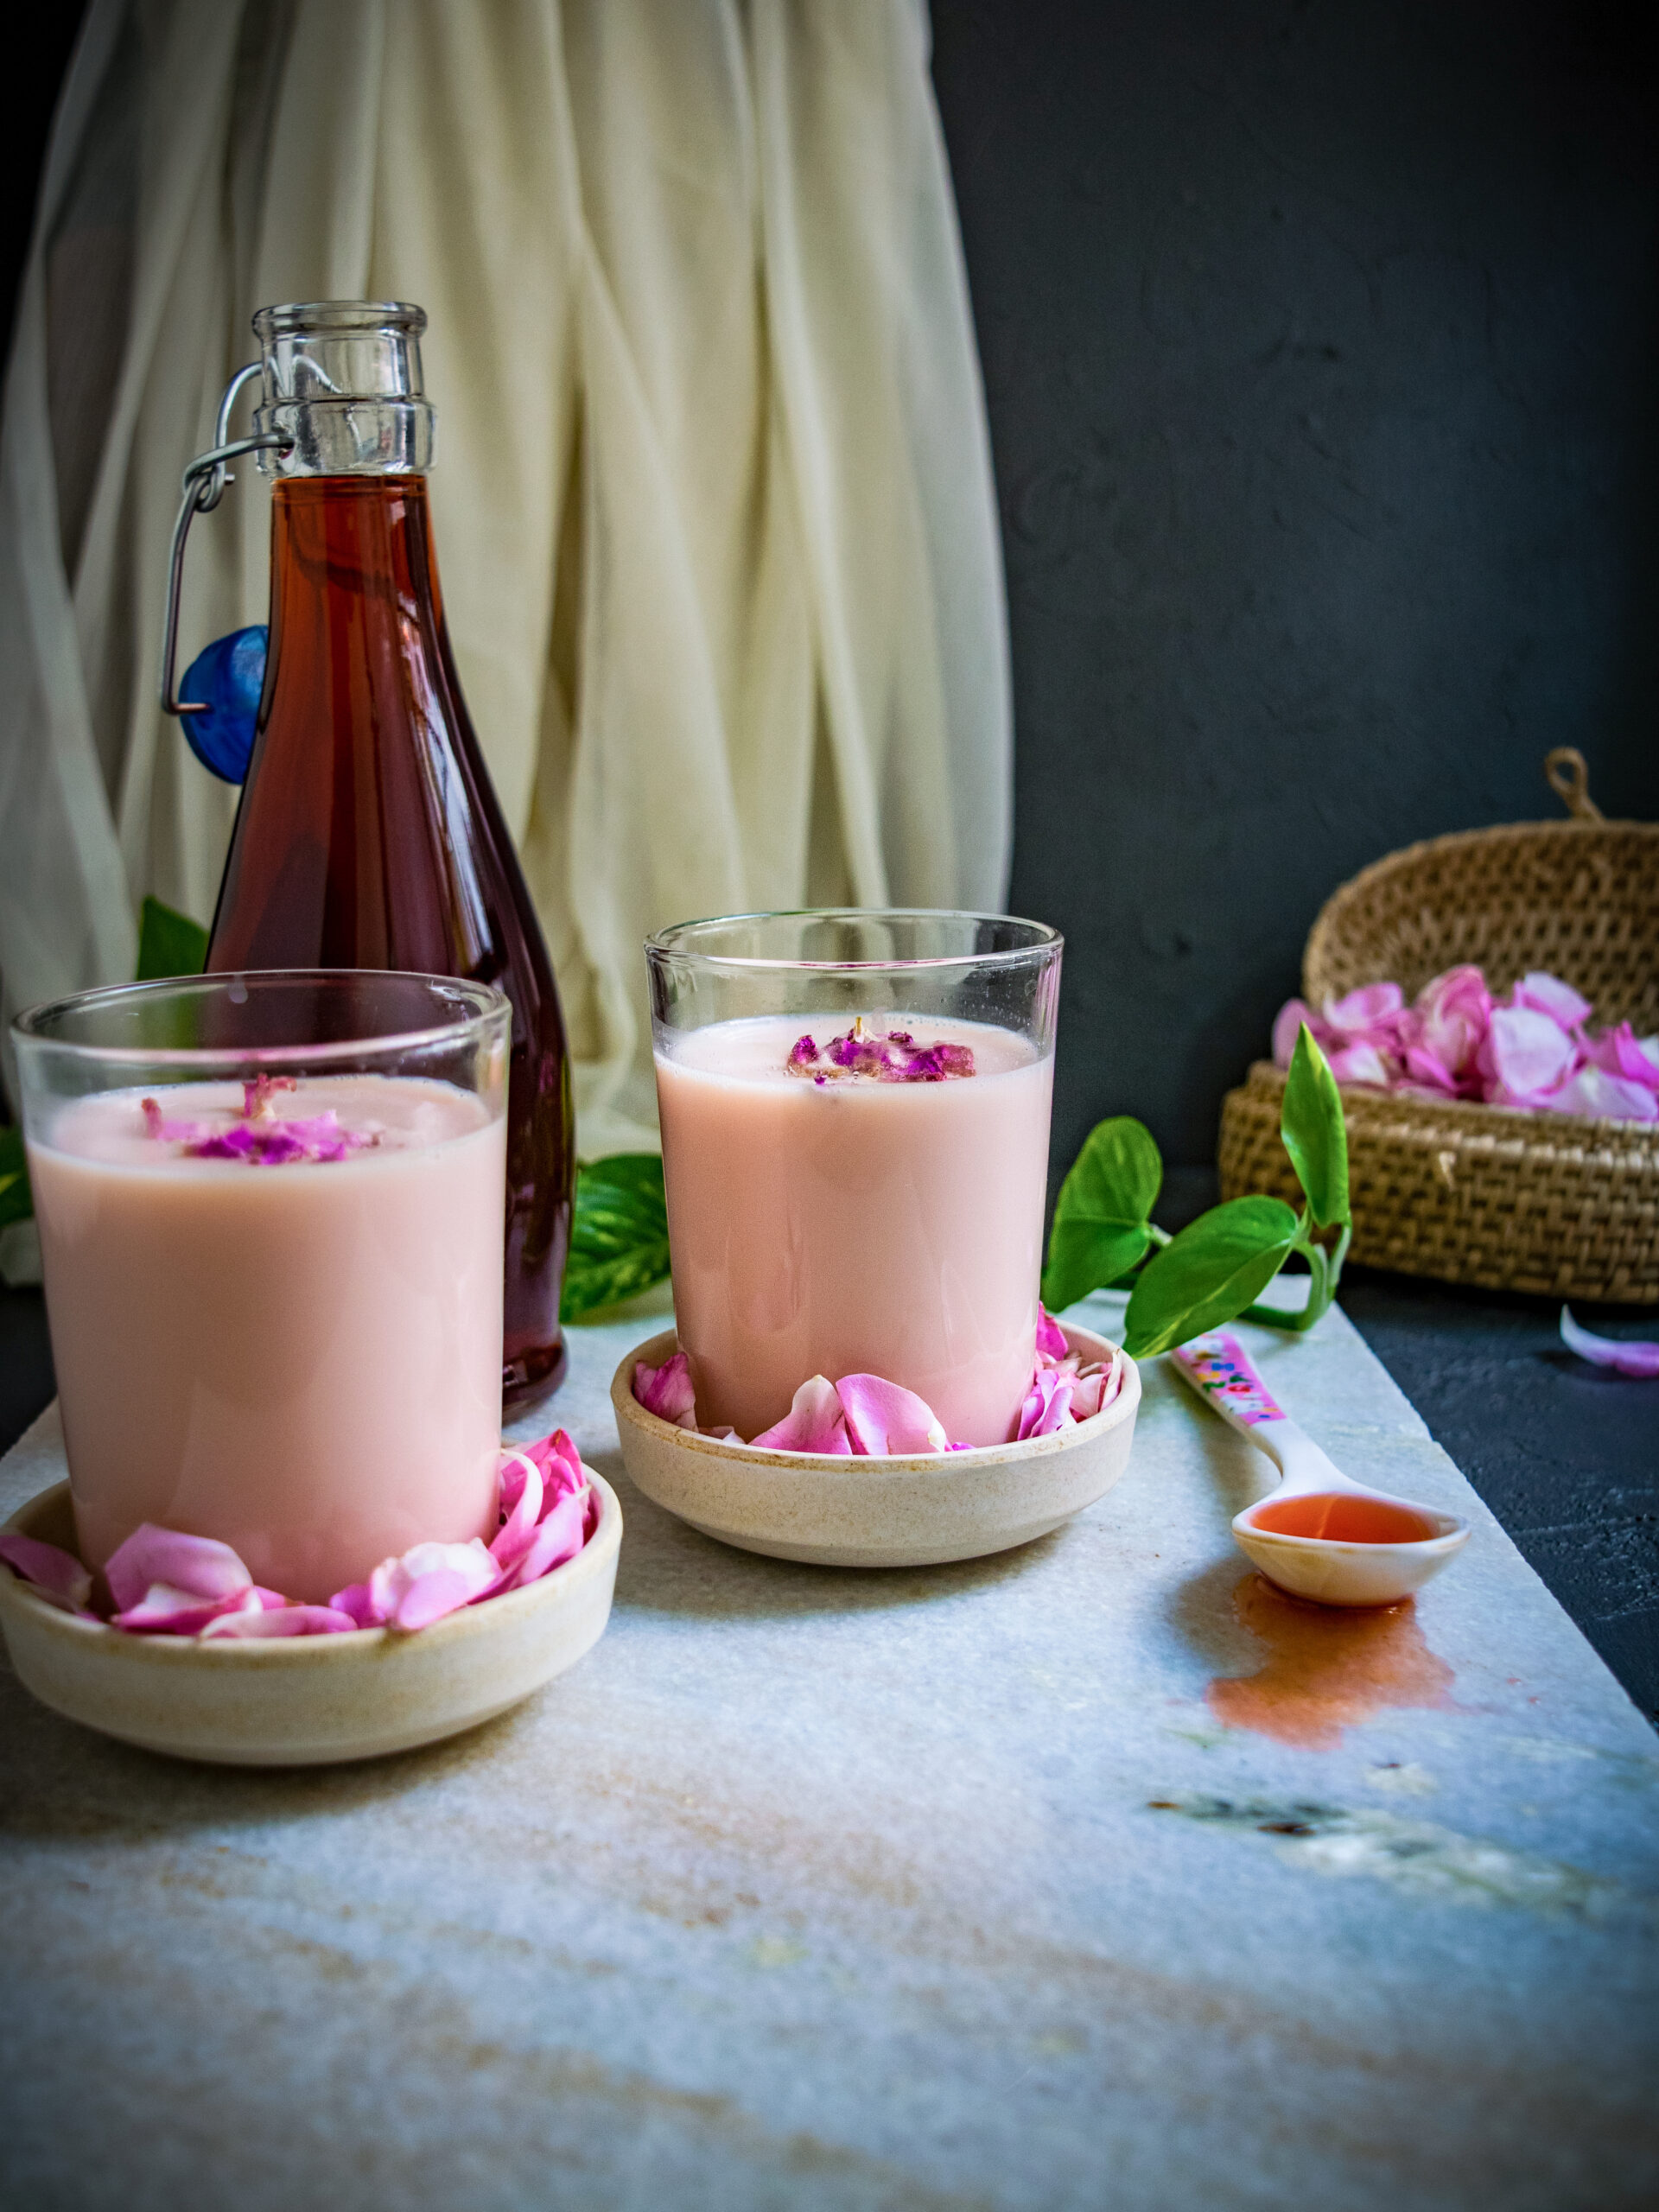 rose milk using homemade syrup